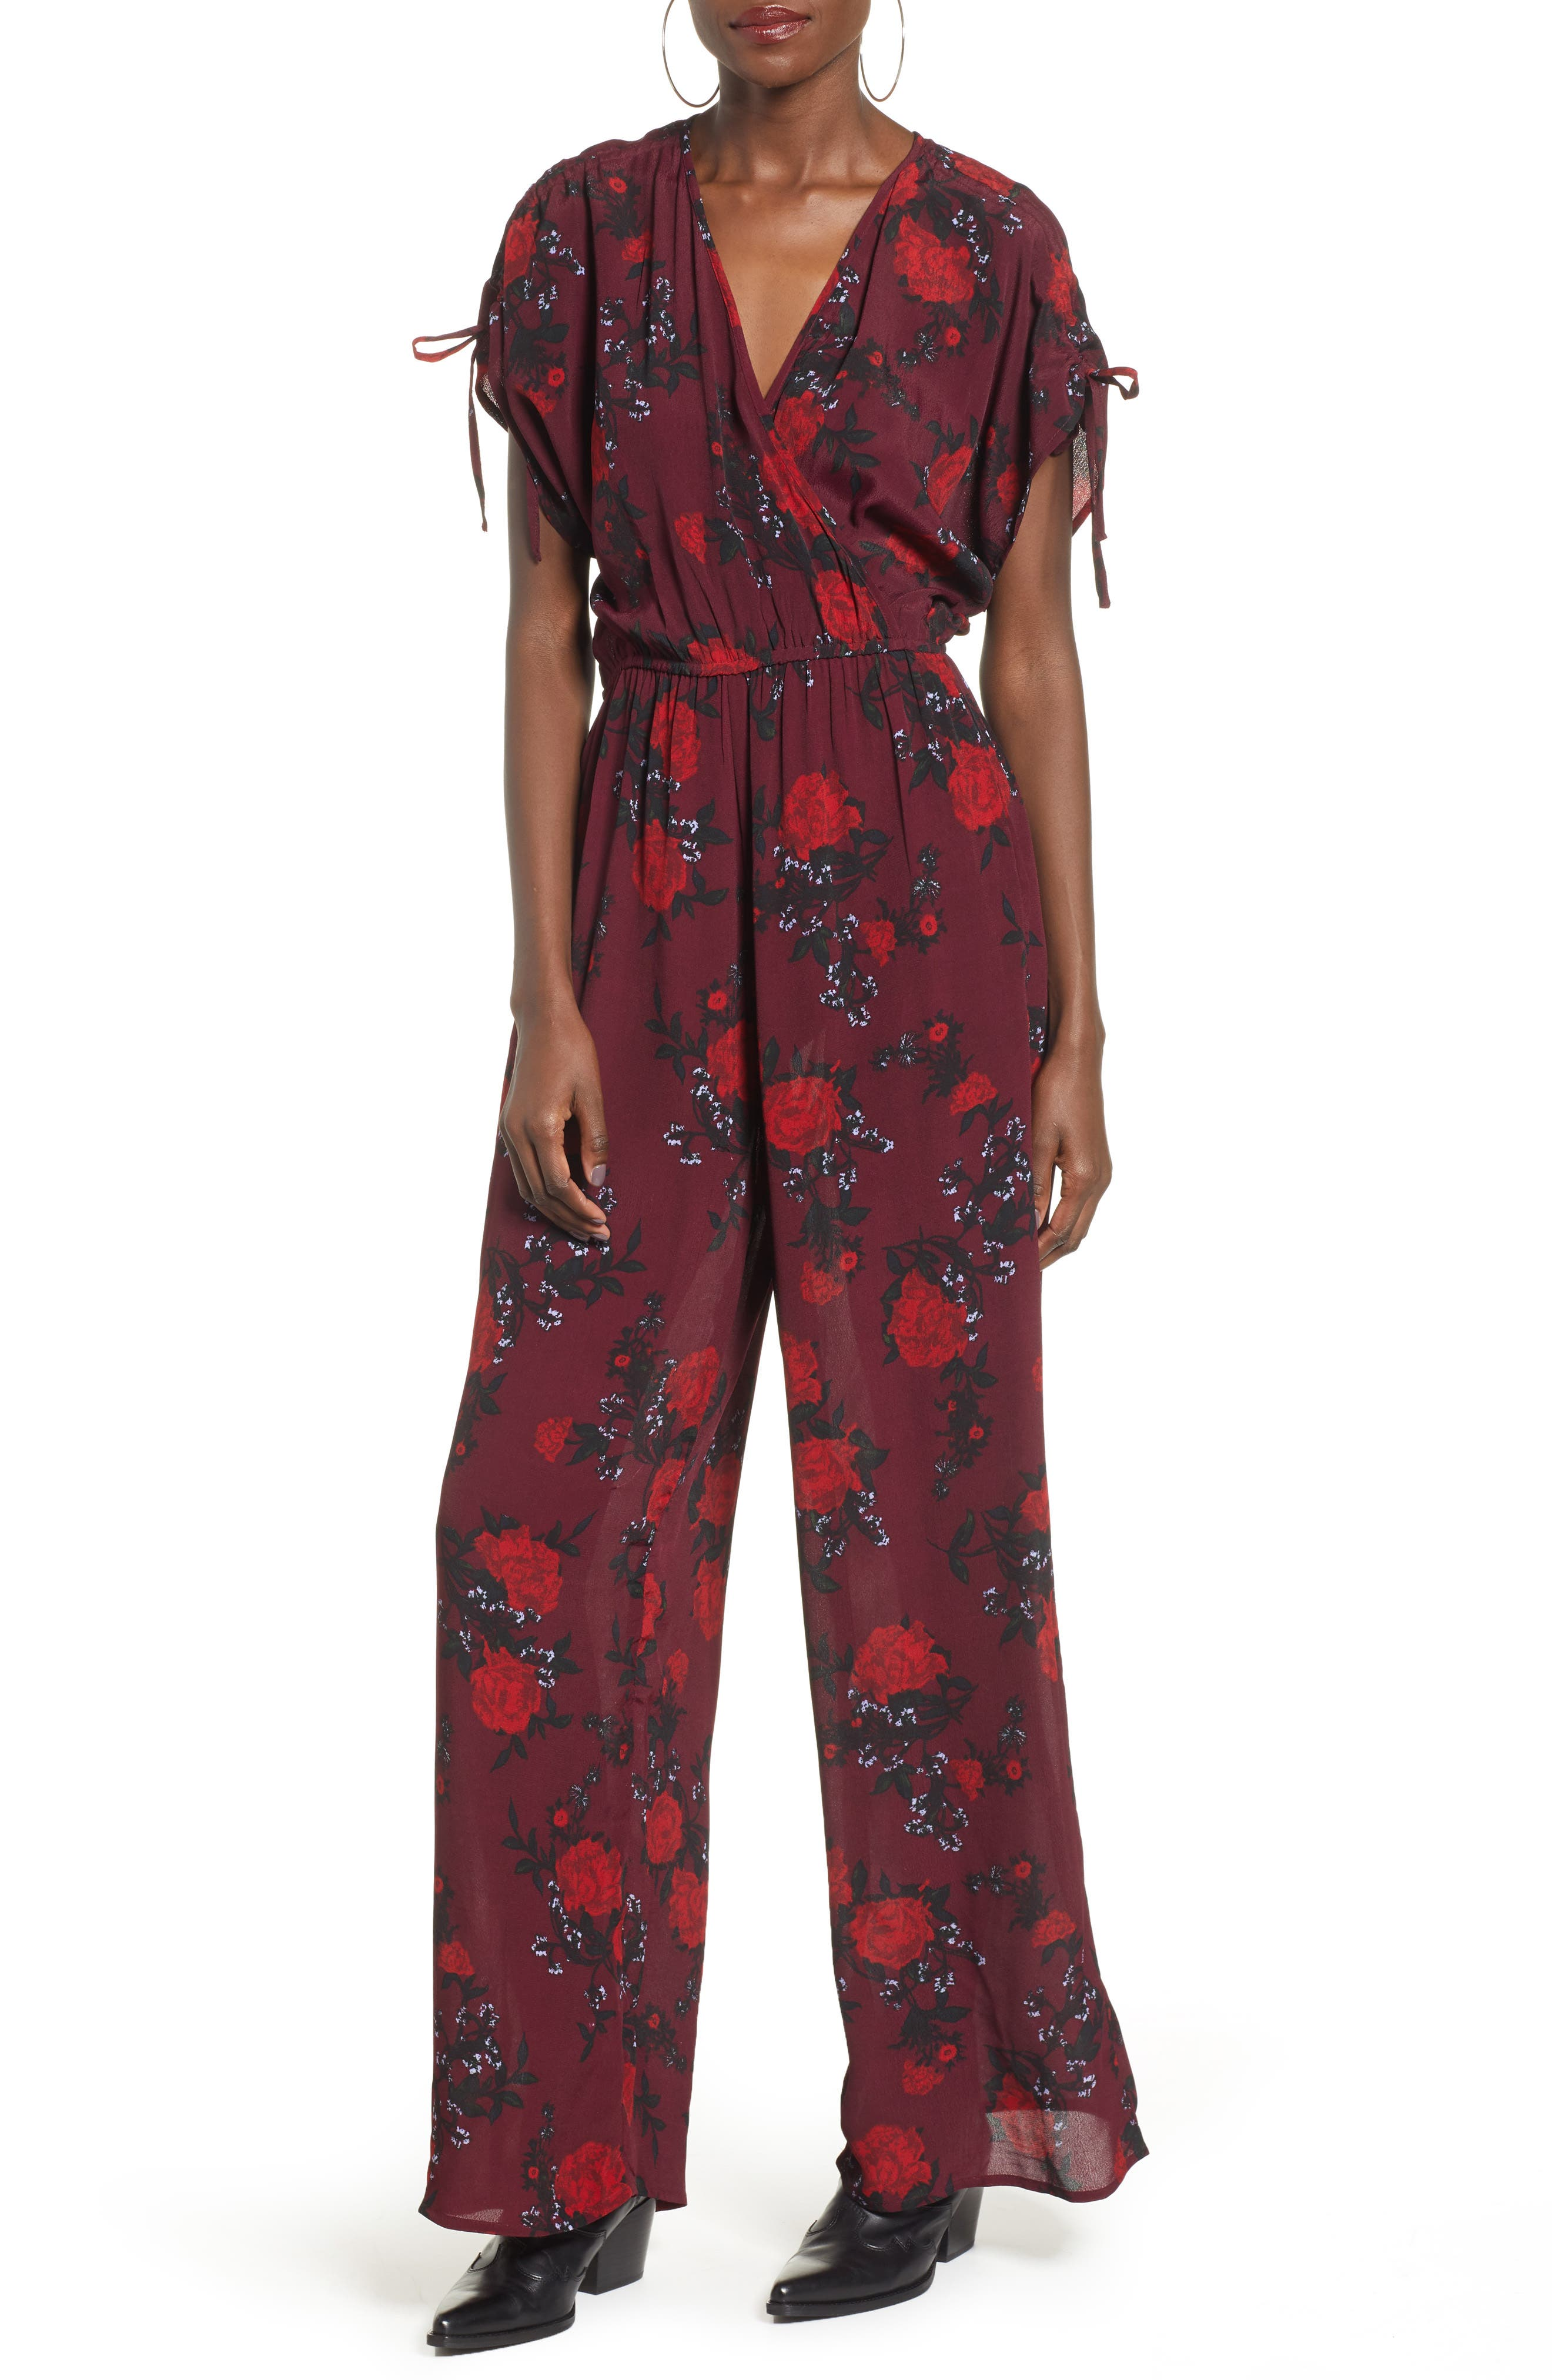 BAND OF GYPSIES Morgan Rose Print Jumpsuit in Burgundy/ Red